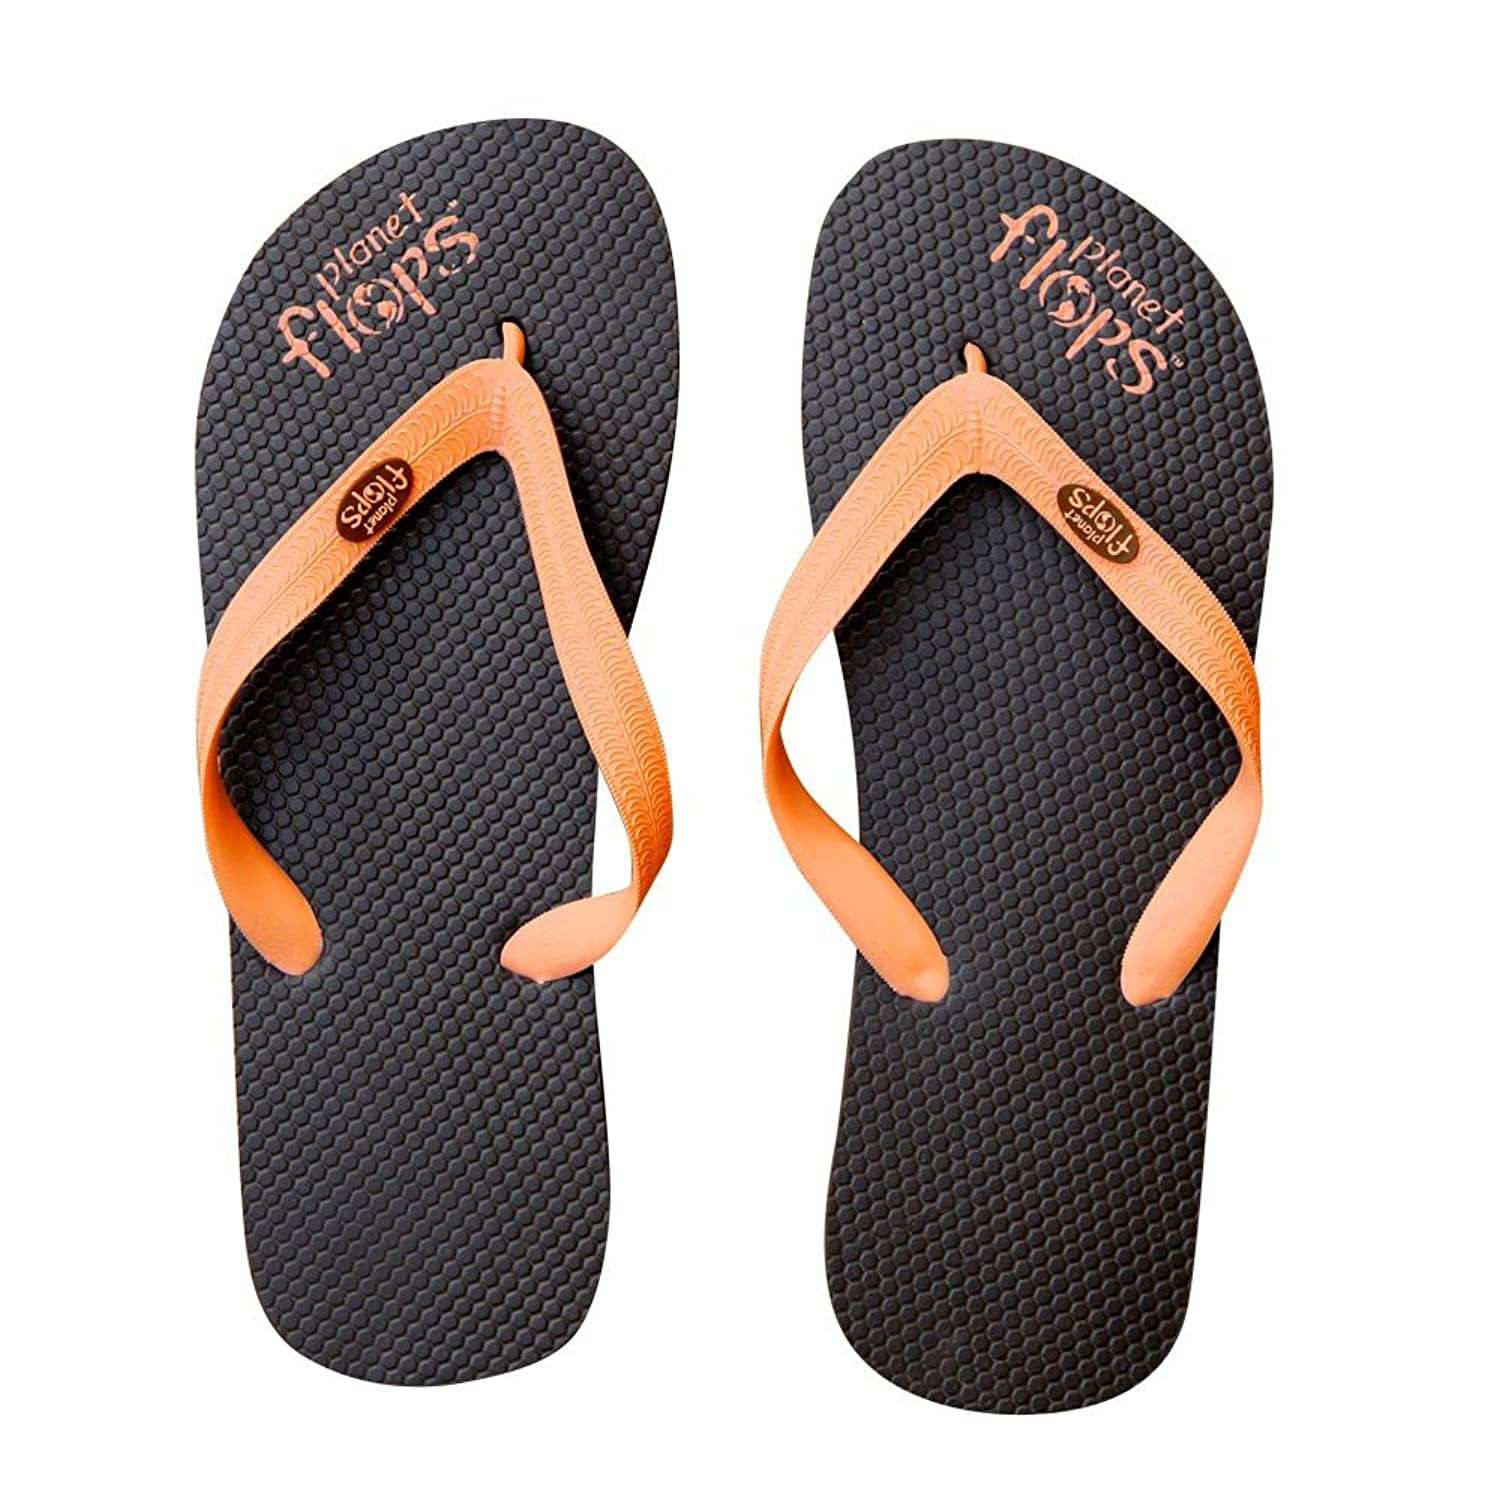 Chocolate Orange (Brown/Orange) Flip-Flops: Incredibly Comfortable Eco-Chic Brazilian Natural Rubber Flip-Flops.